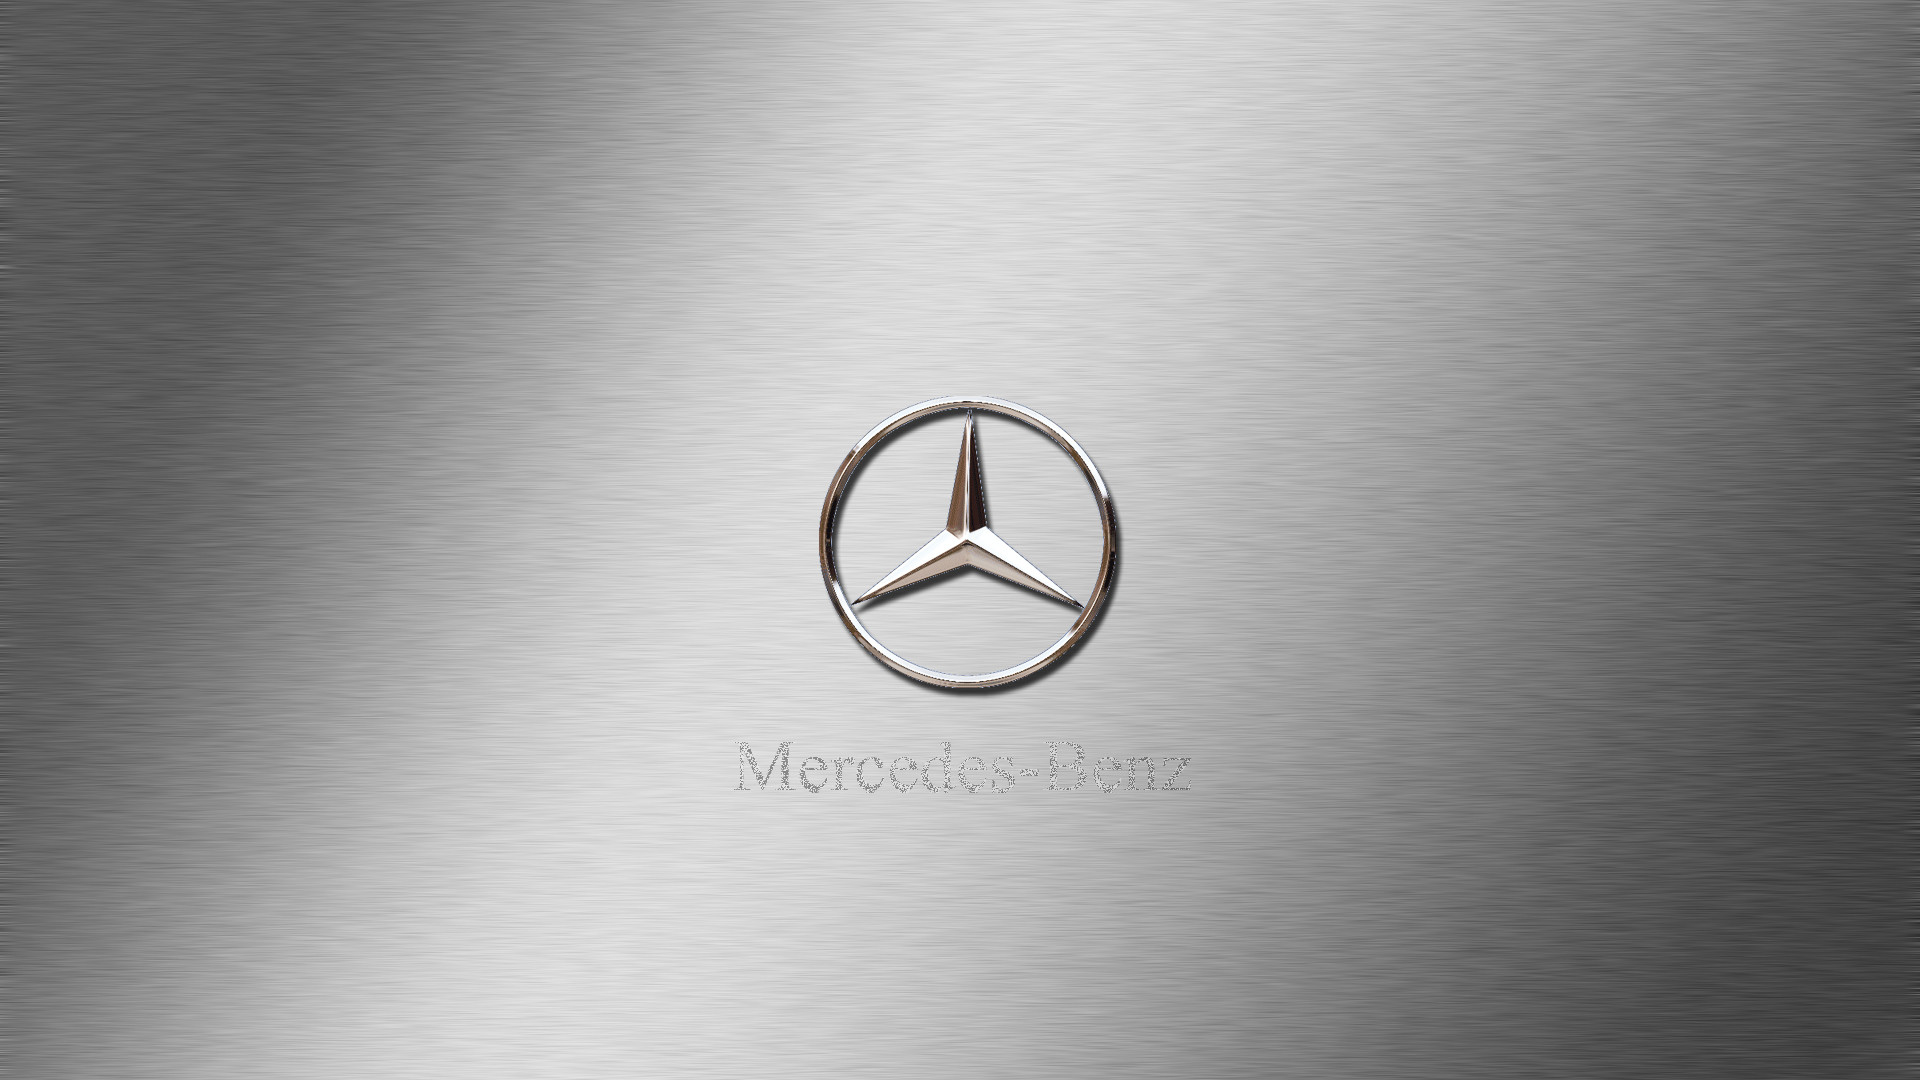 Mercedes benz logo wallpapers 53 images 1920x1080 mercedes benz logo wallpaper by rokpremuz on deviantart voltagebd Images